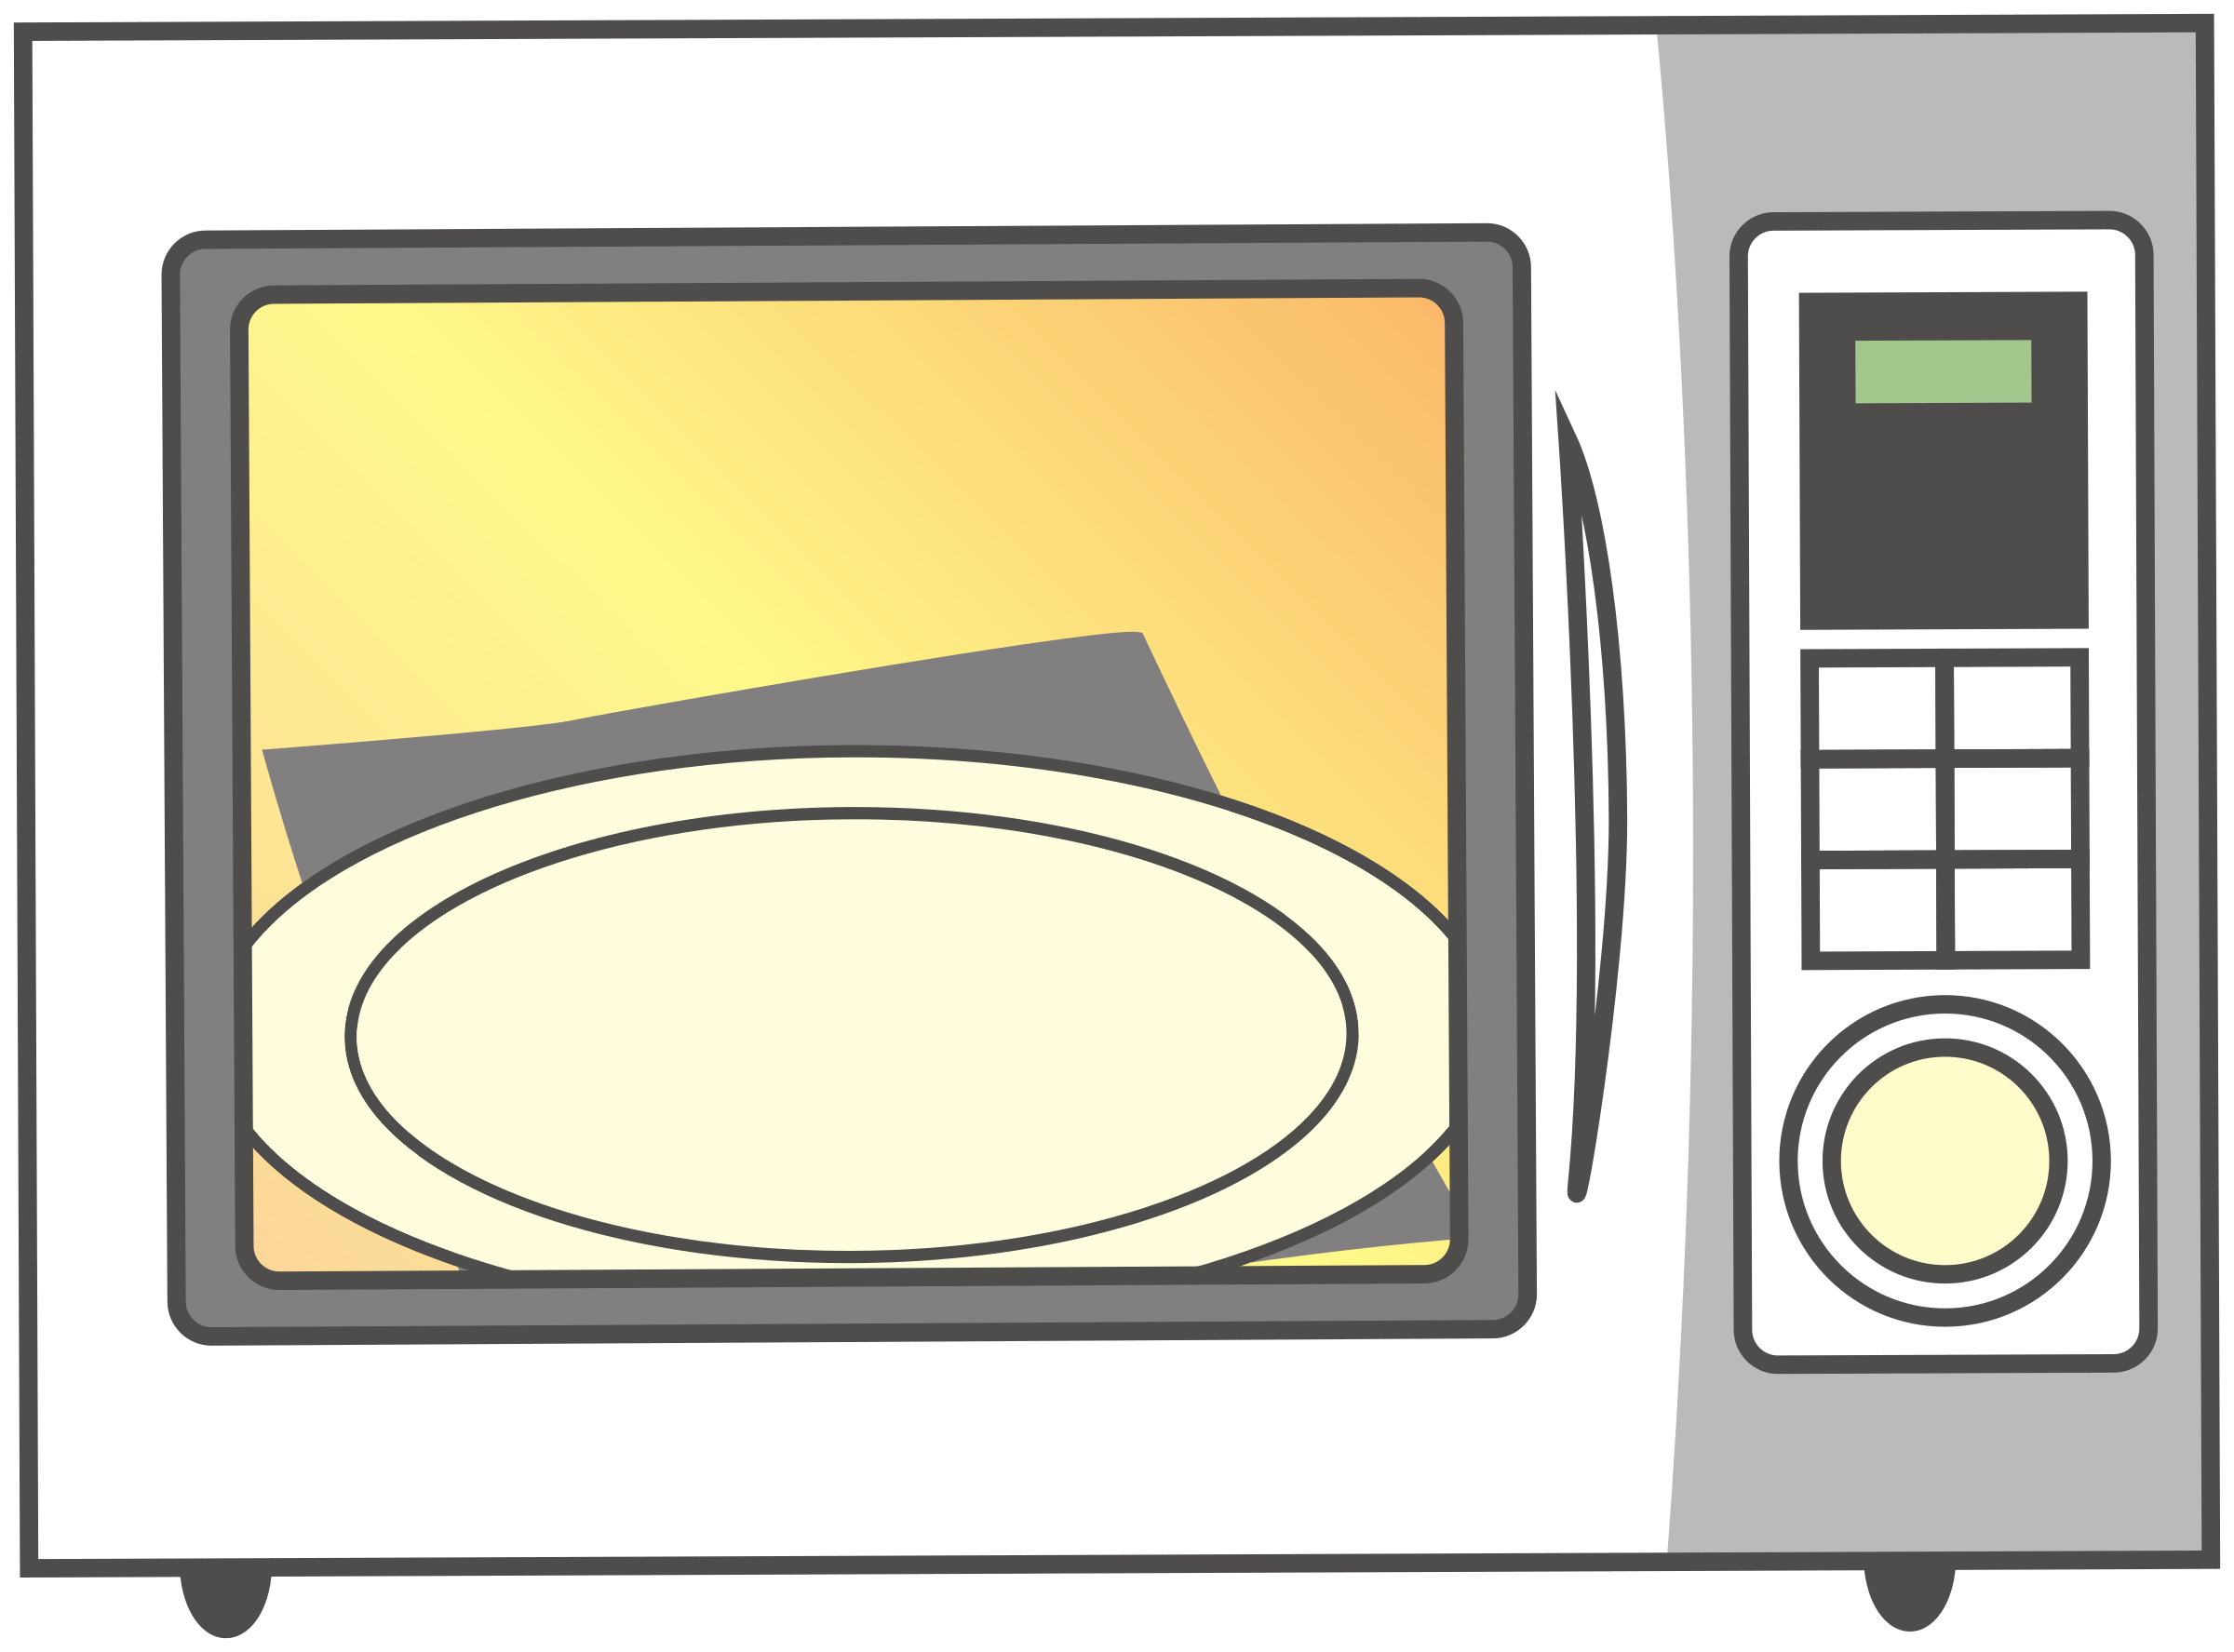 Simple Empty Microwave by j4p4n